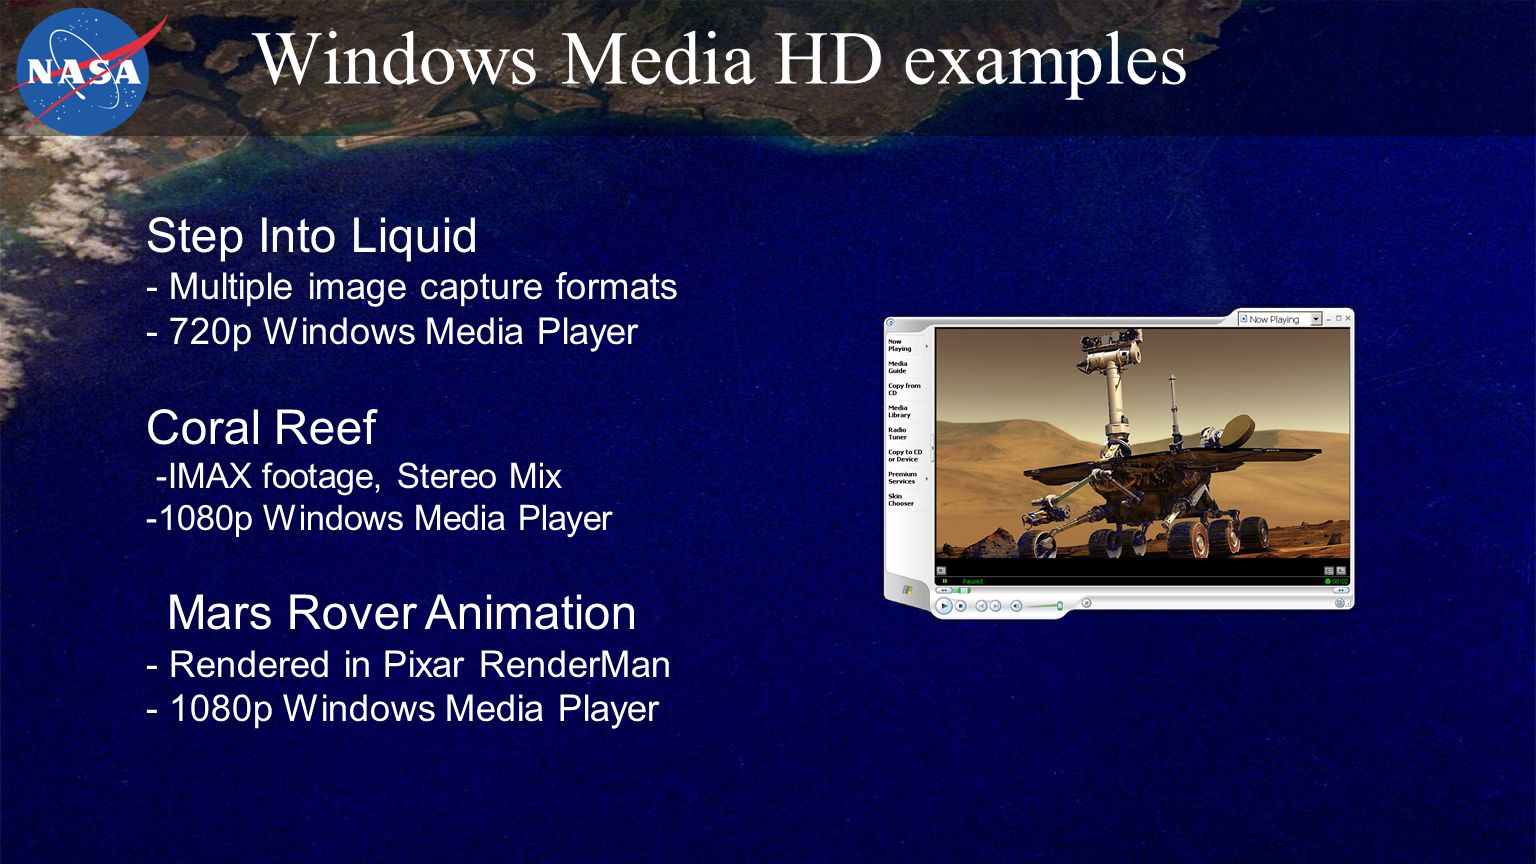 Windows Media HD examples Step Into Liquid - Multiple image capture formats - 720p Windows Media Player Coral Reef -IMAX footage, Stereo Mix -1080p Windows Media Player Mars Rover Animation - Rendered in Pixar RenderMan - 1080p Windows Media Player